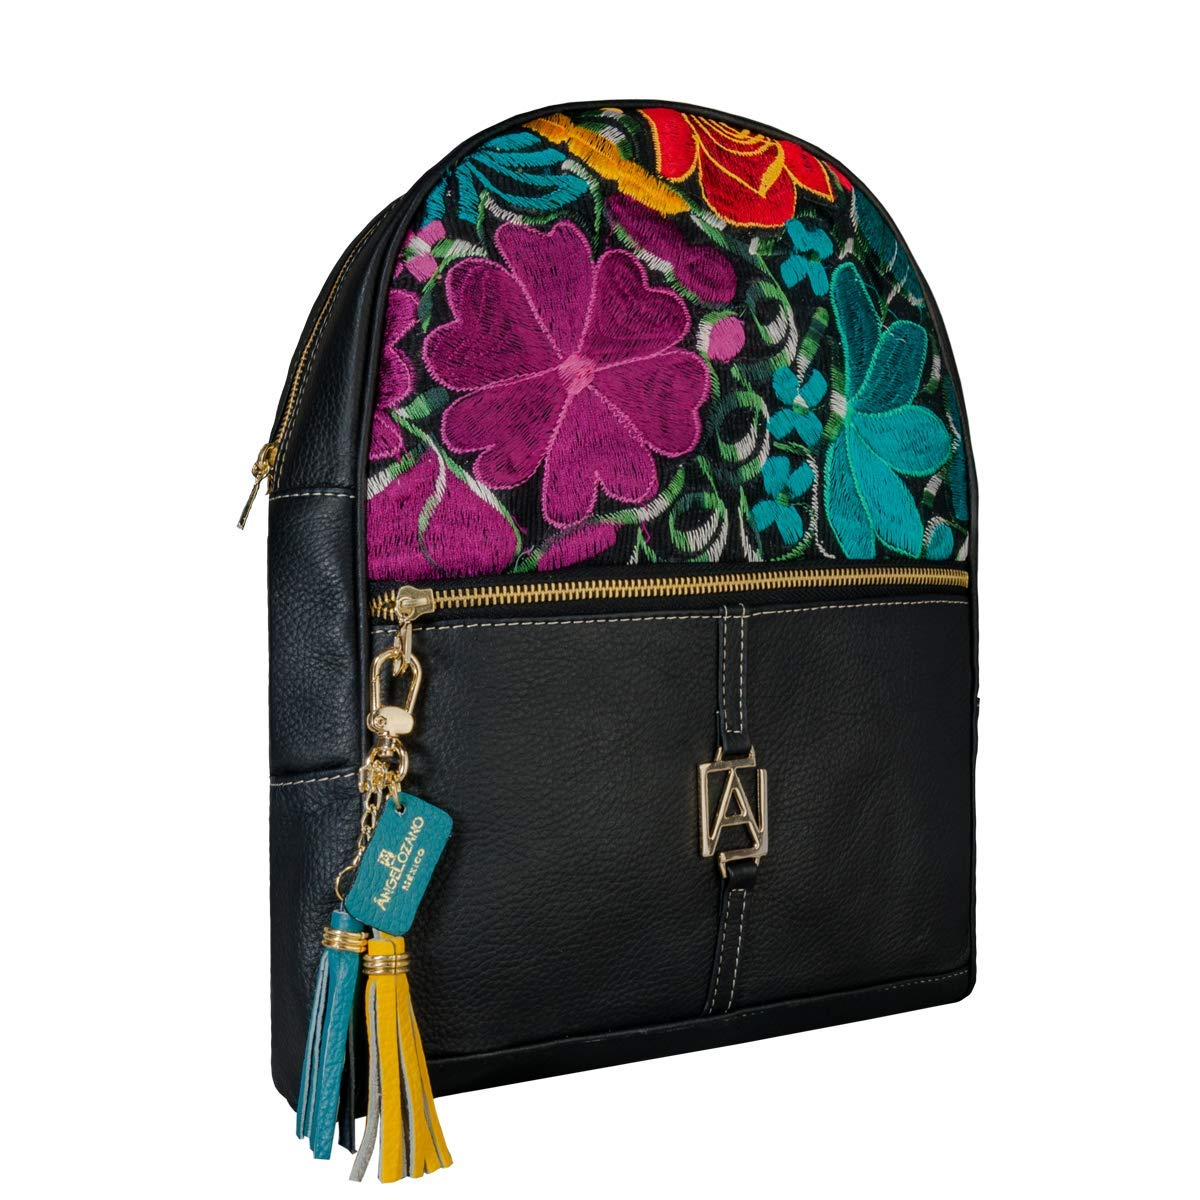 Amazon.com: Black Chiapas model leather Bag with Artisan Embroidery. Original AngeLozano Brand. 10.24 x 3.94 x 13.39 inches: Handmade